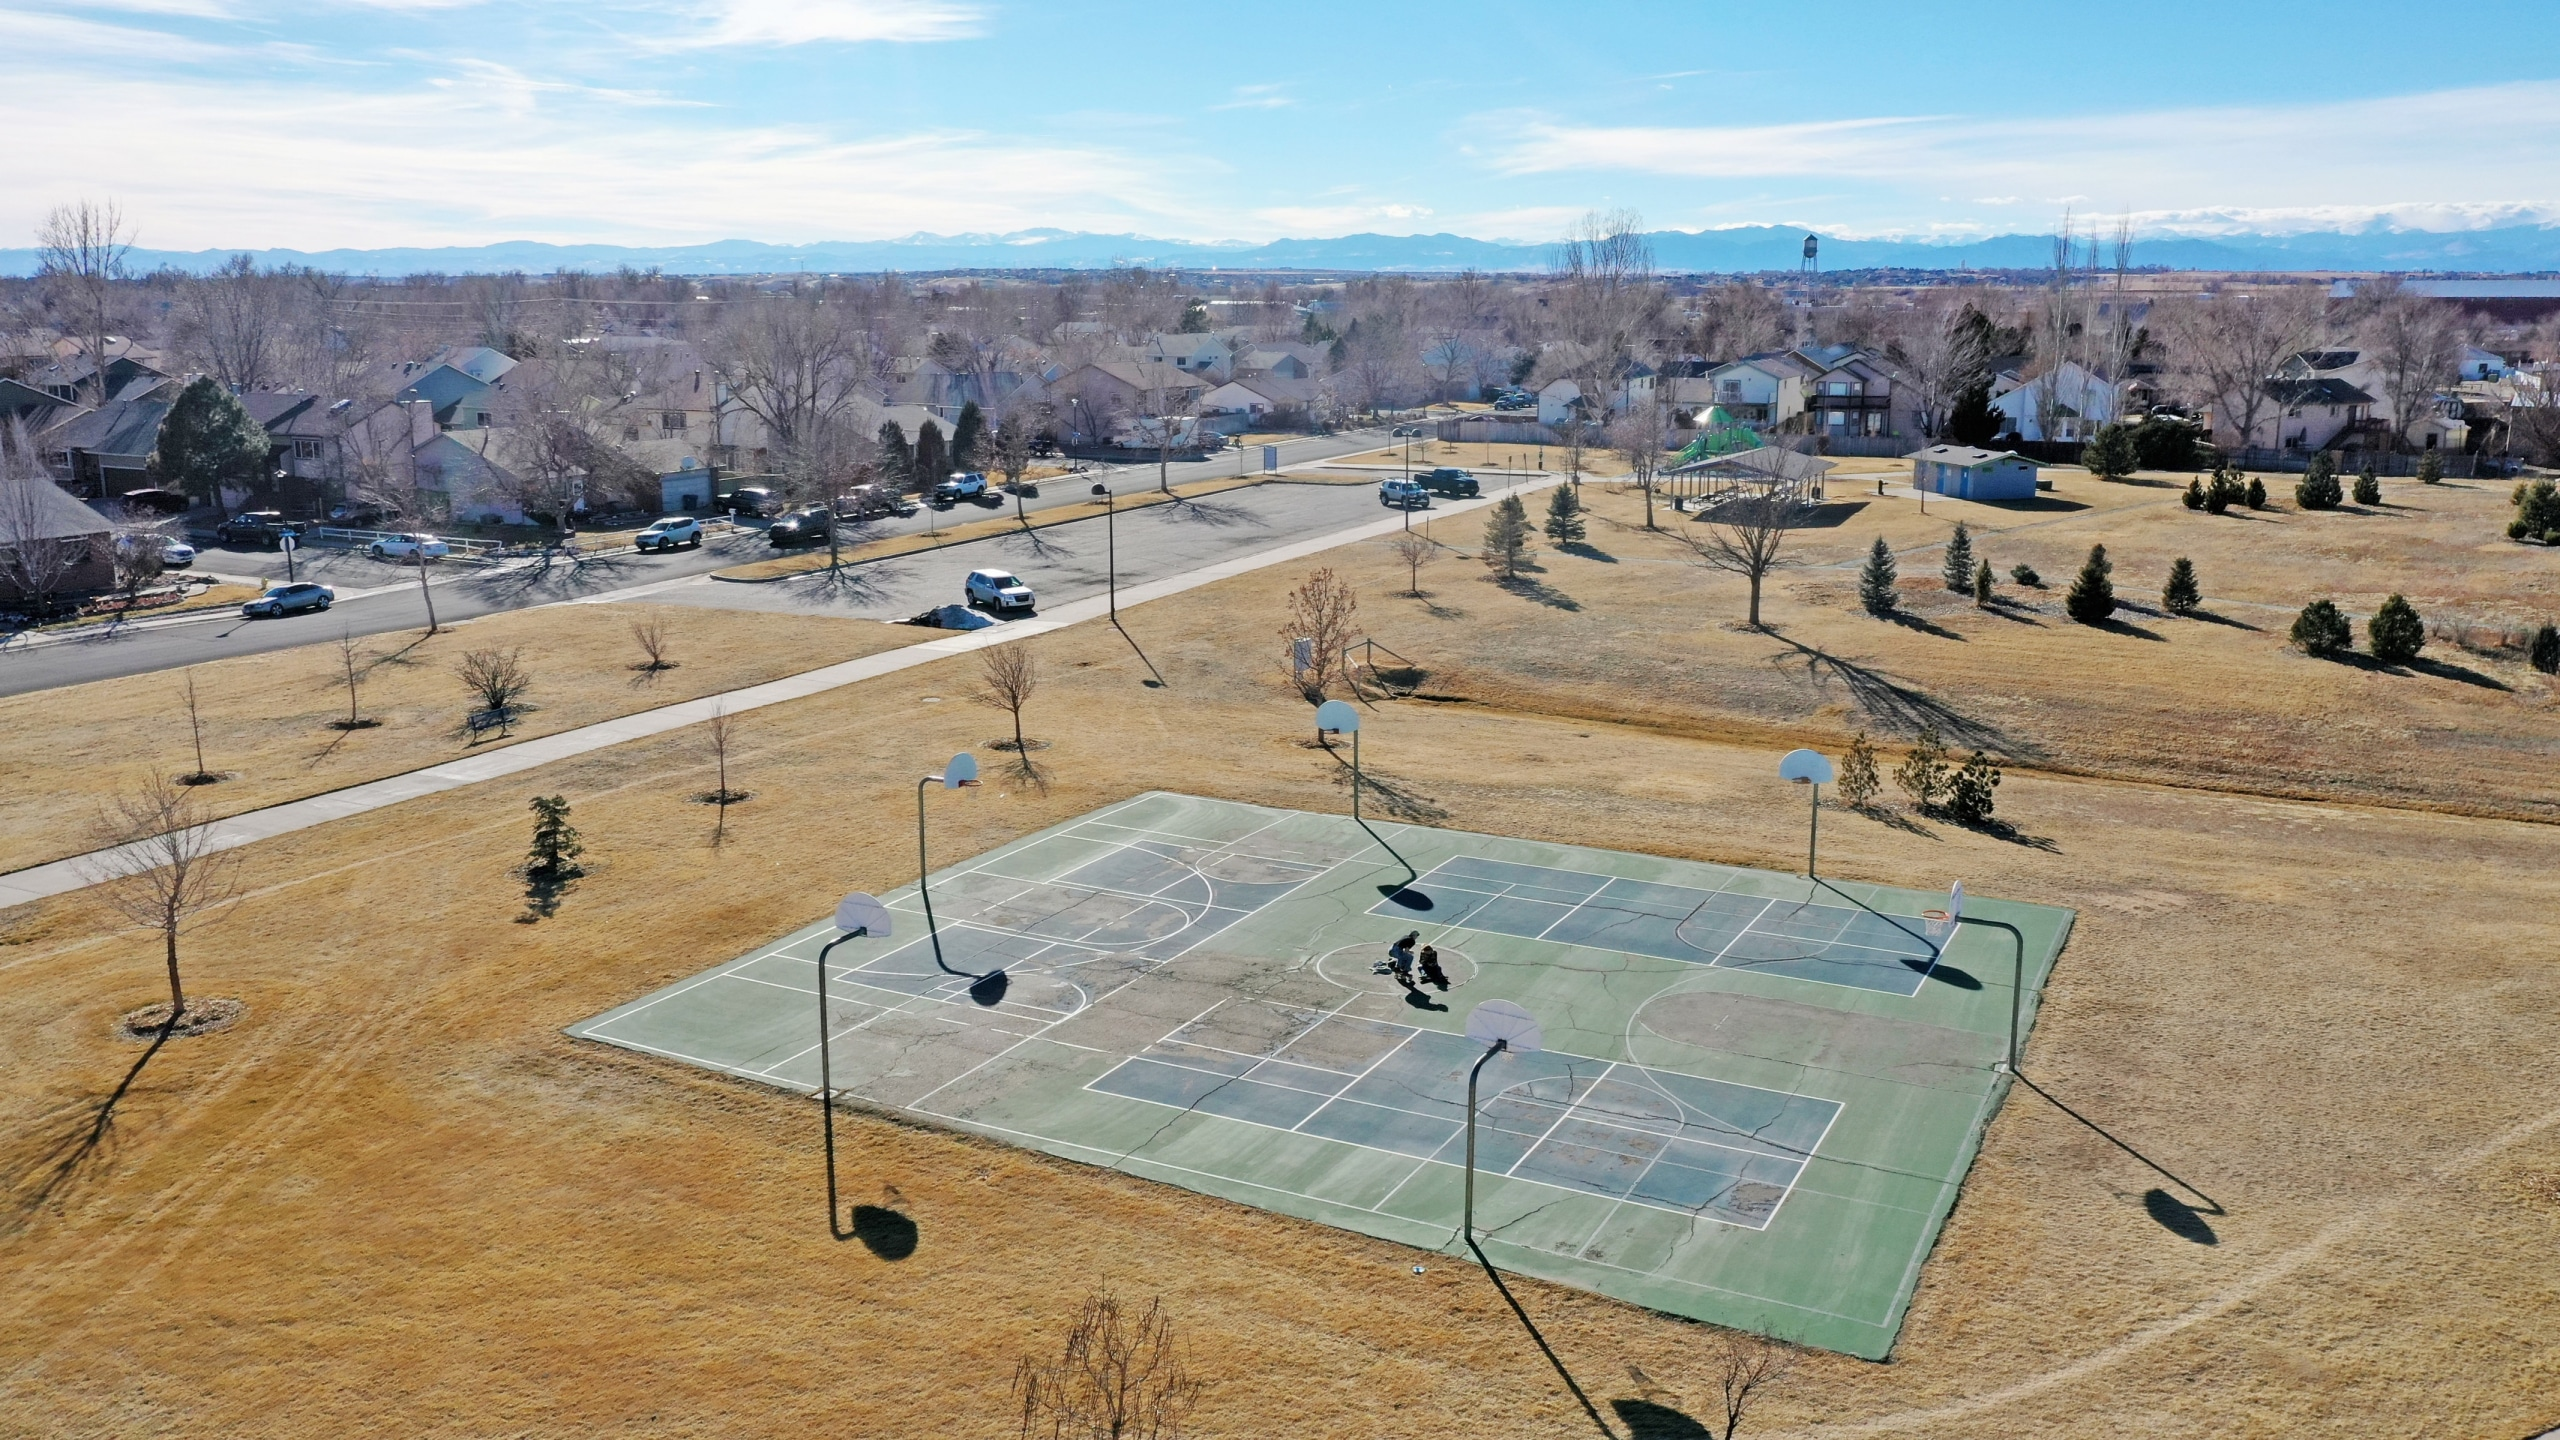 Brighton Park just steps away from house with basketball courts and recreation center